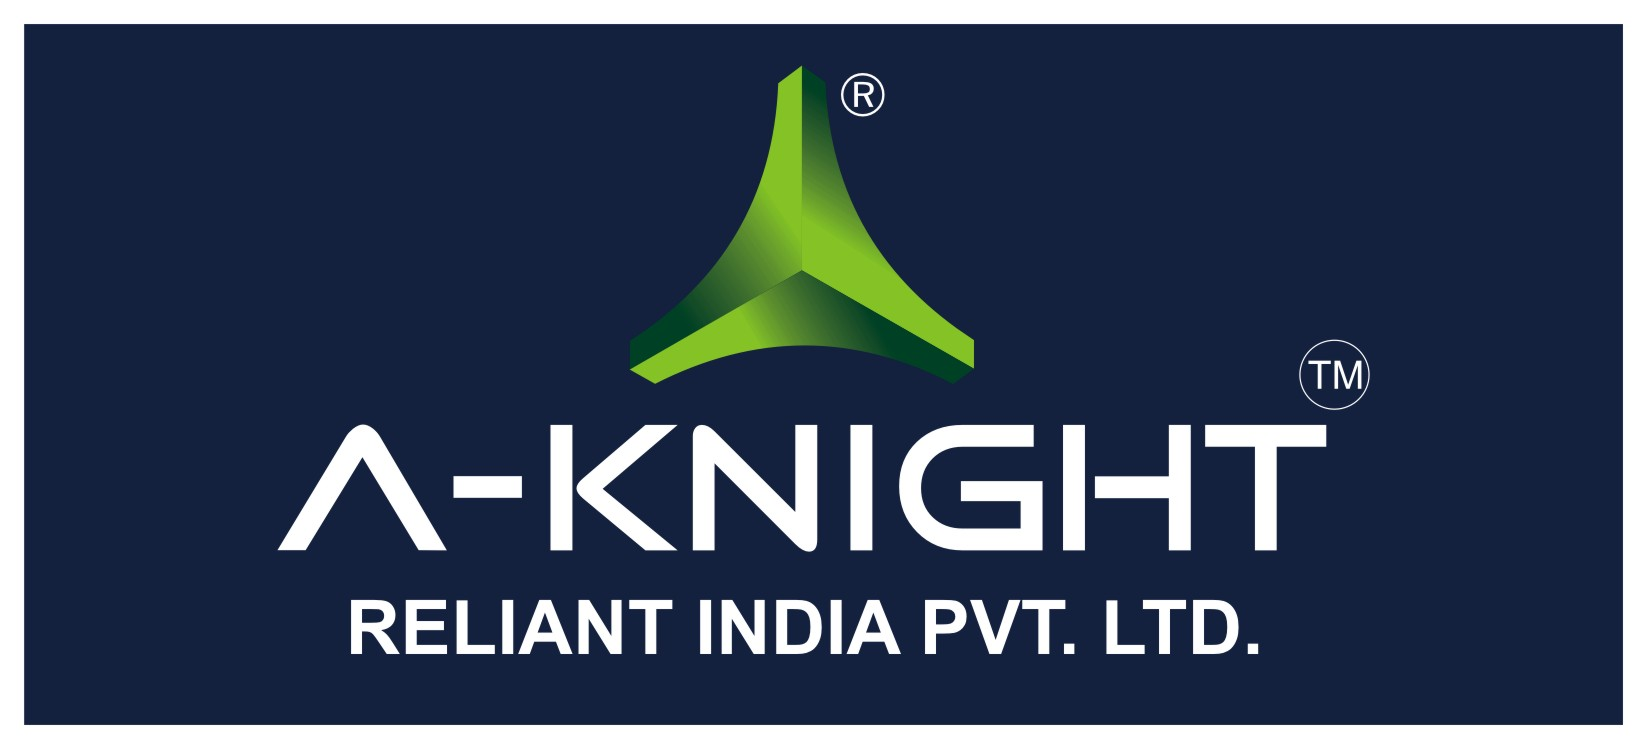 A-Knight Reliant India Pvt.Ltd